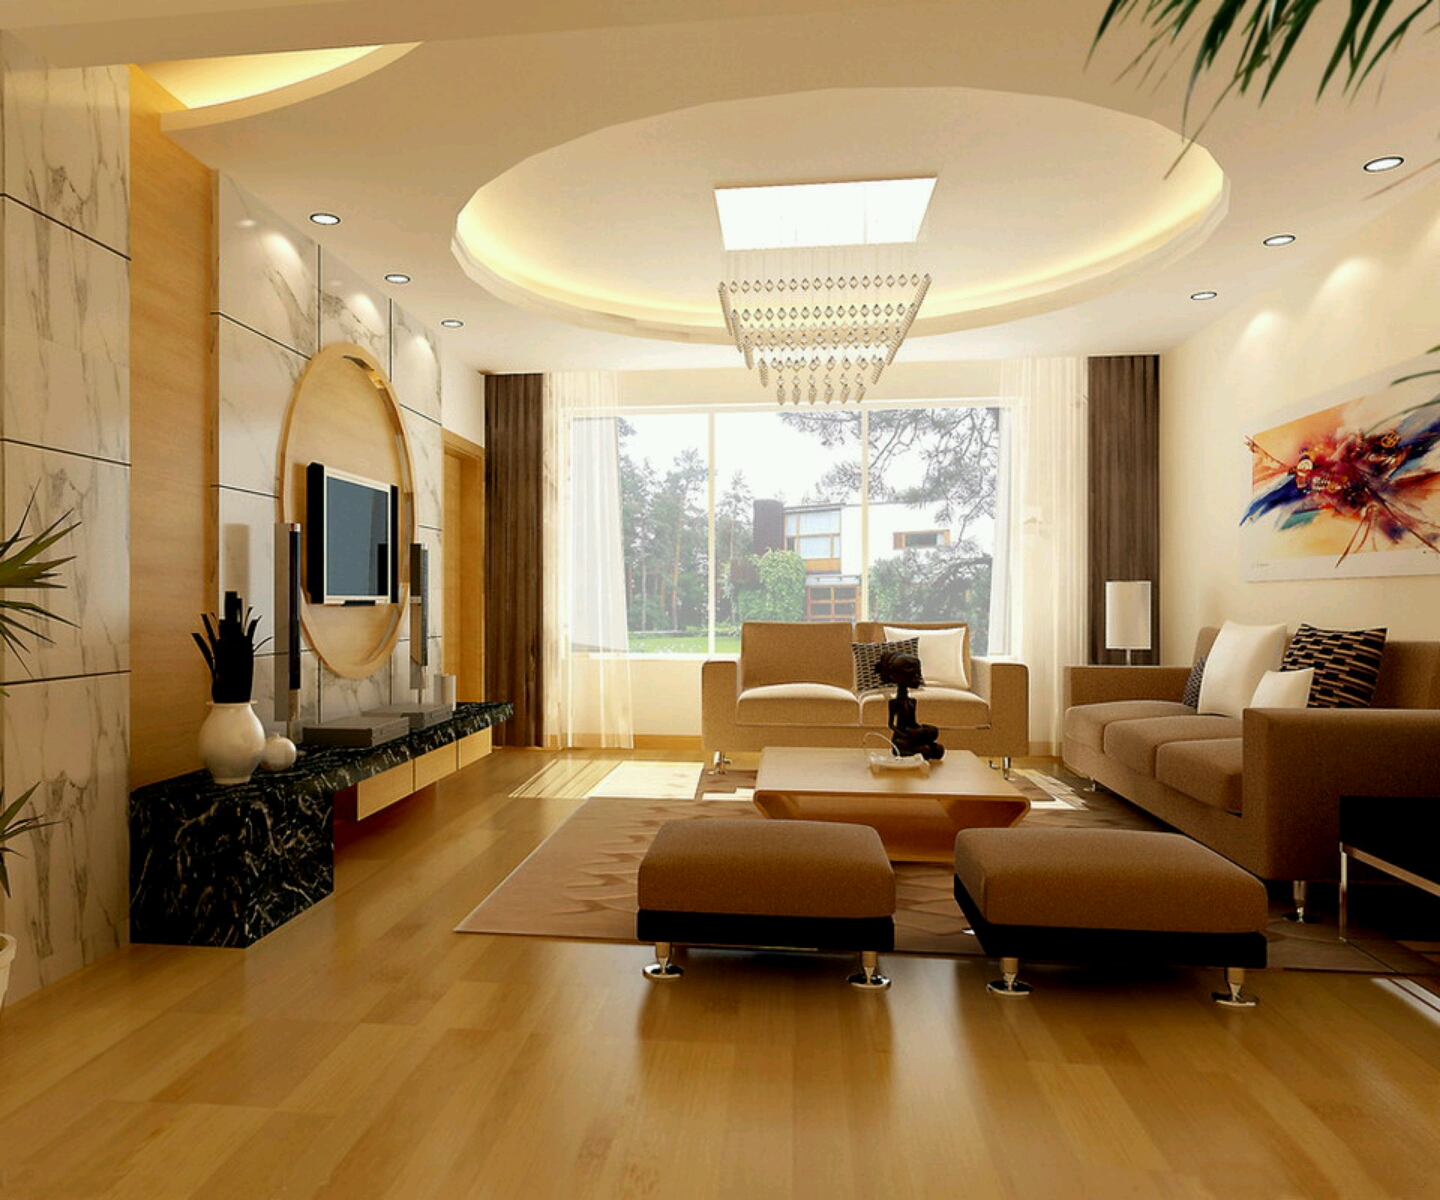 Modern interior decoration living rooms ceiling designs - House interior design pictures living room ...